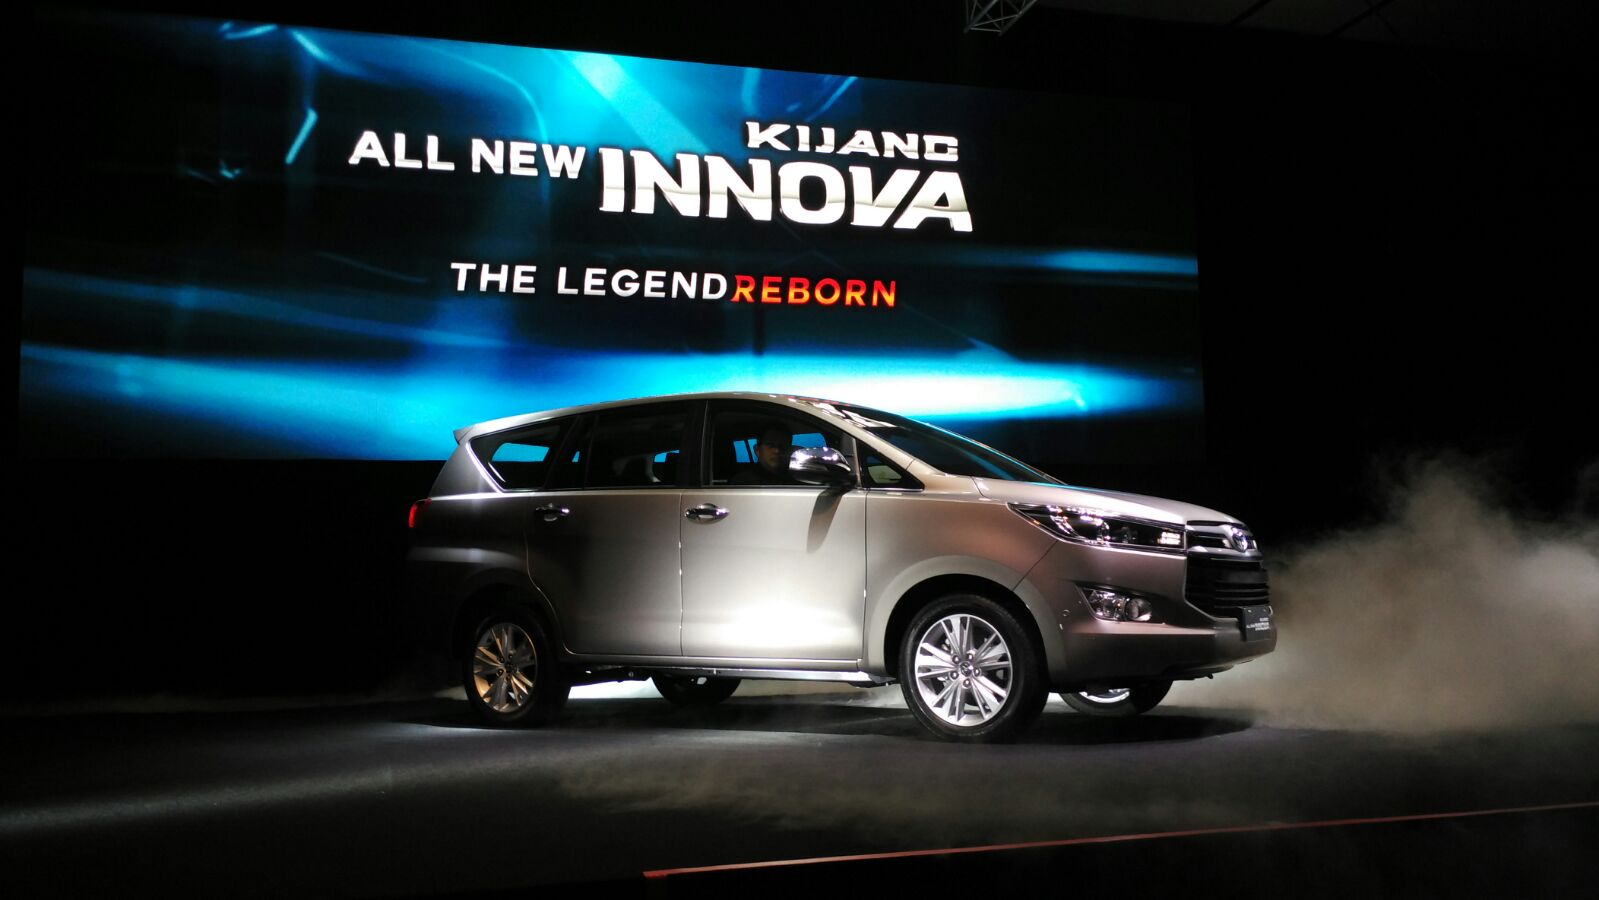 all new kijang innova g 2017 the legend reborn toyota 2016 diluncurkan di indonesia